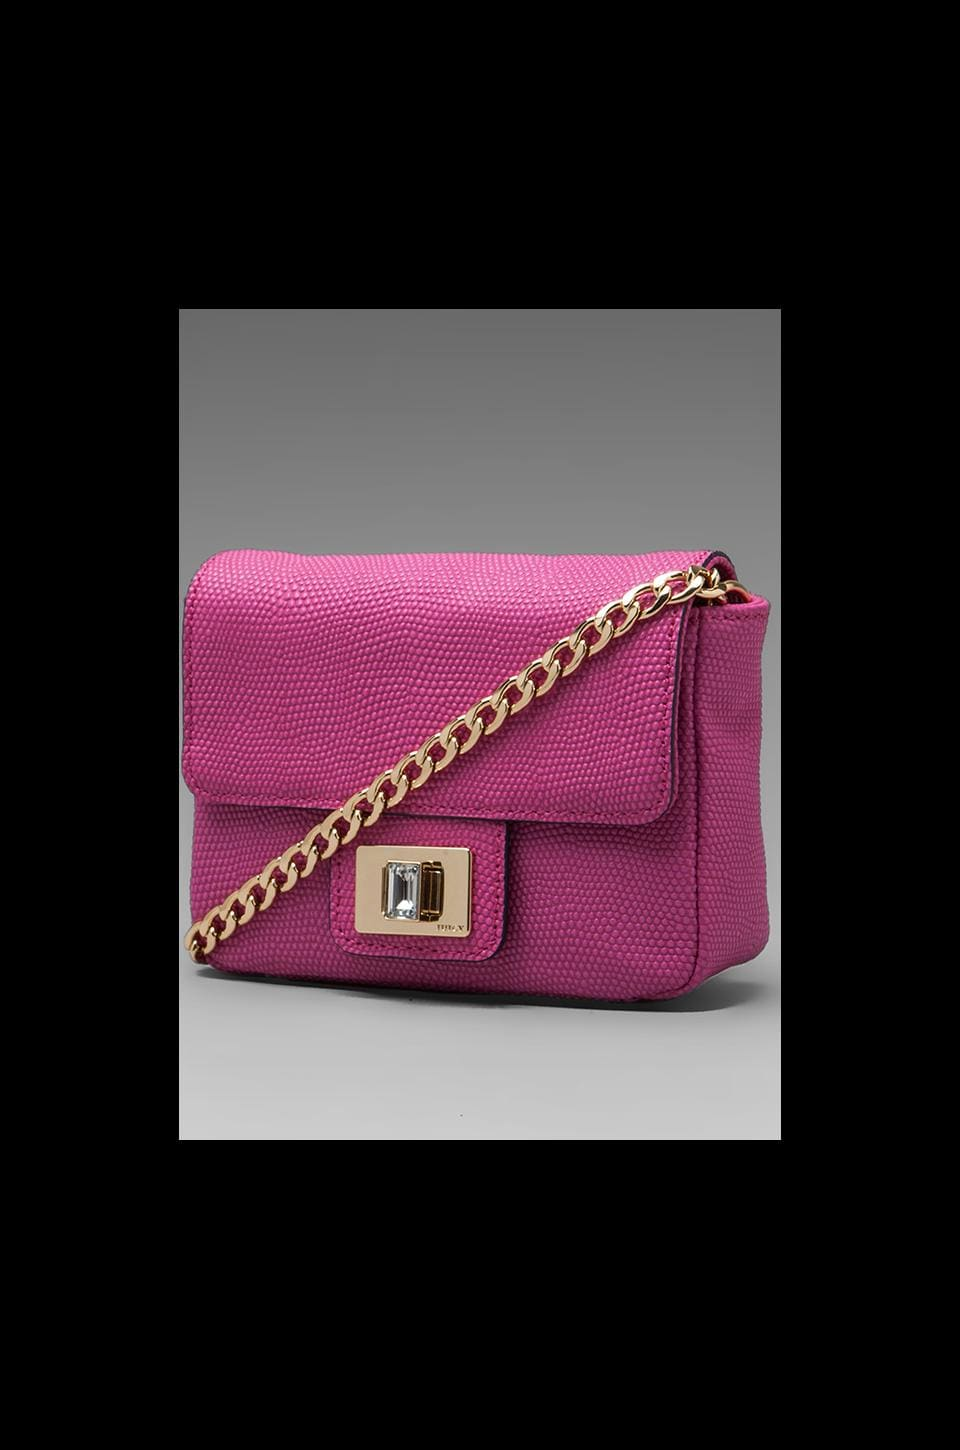 Juicy Couture Emblazon Leather Mini G in Pink